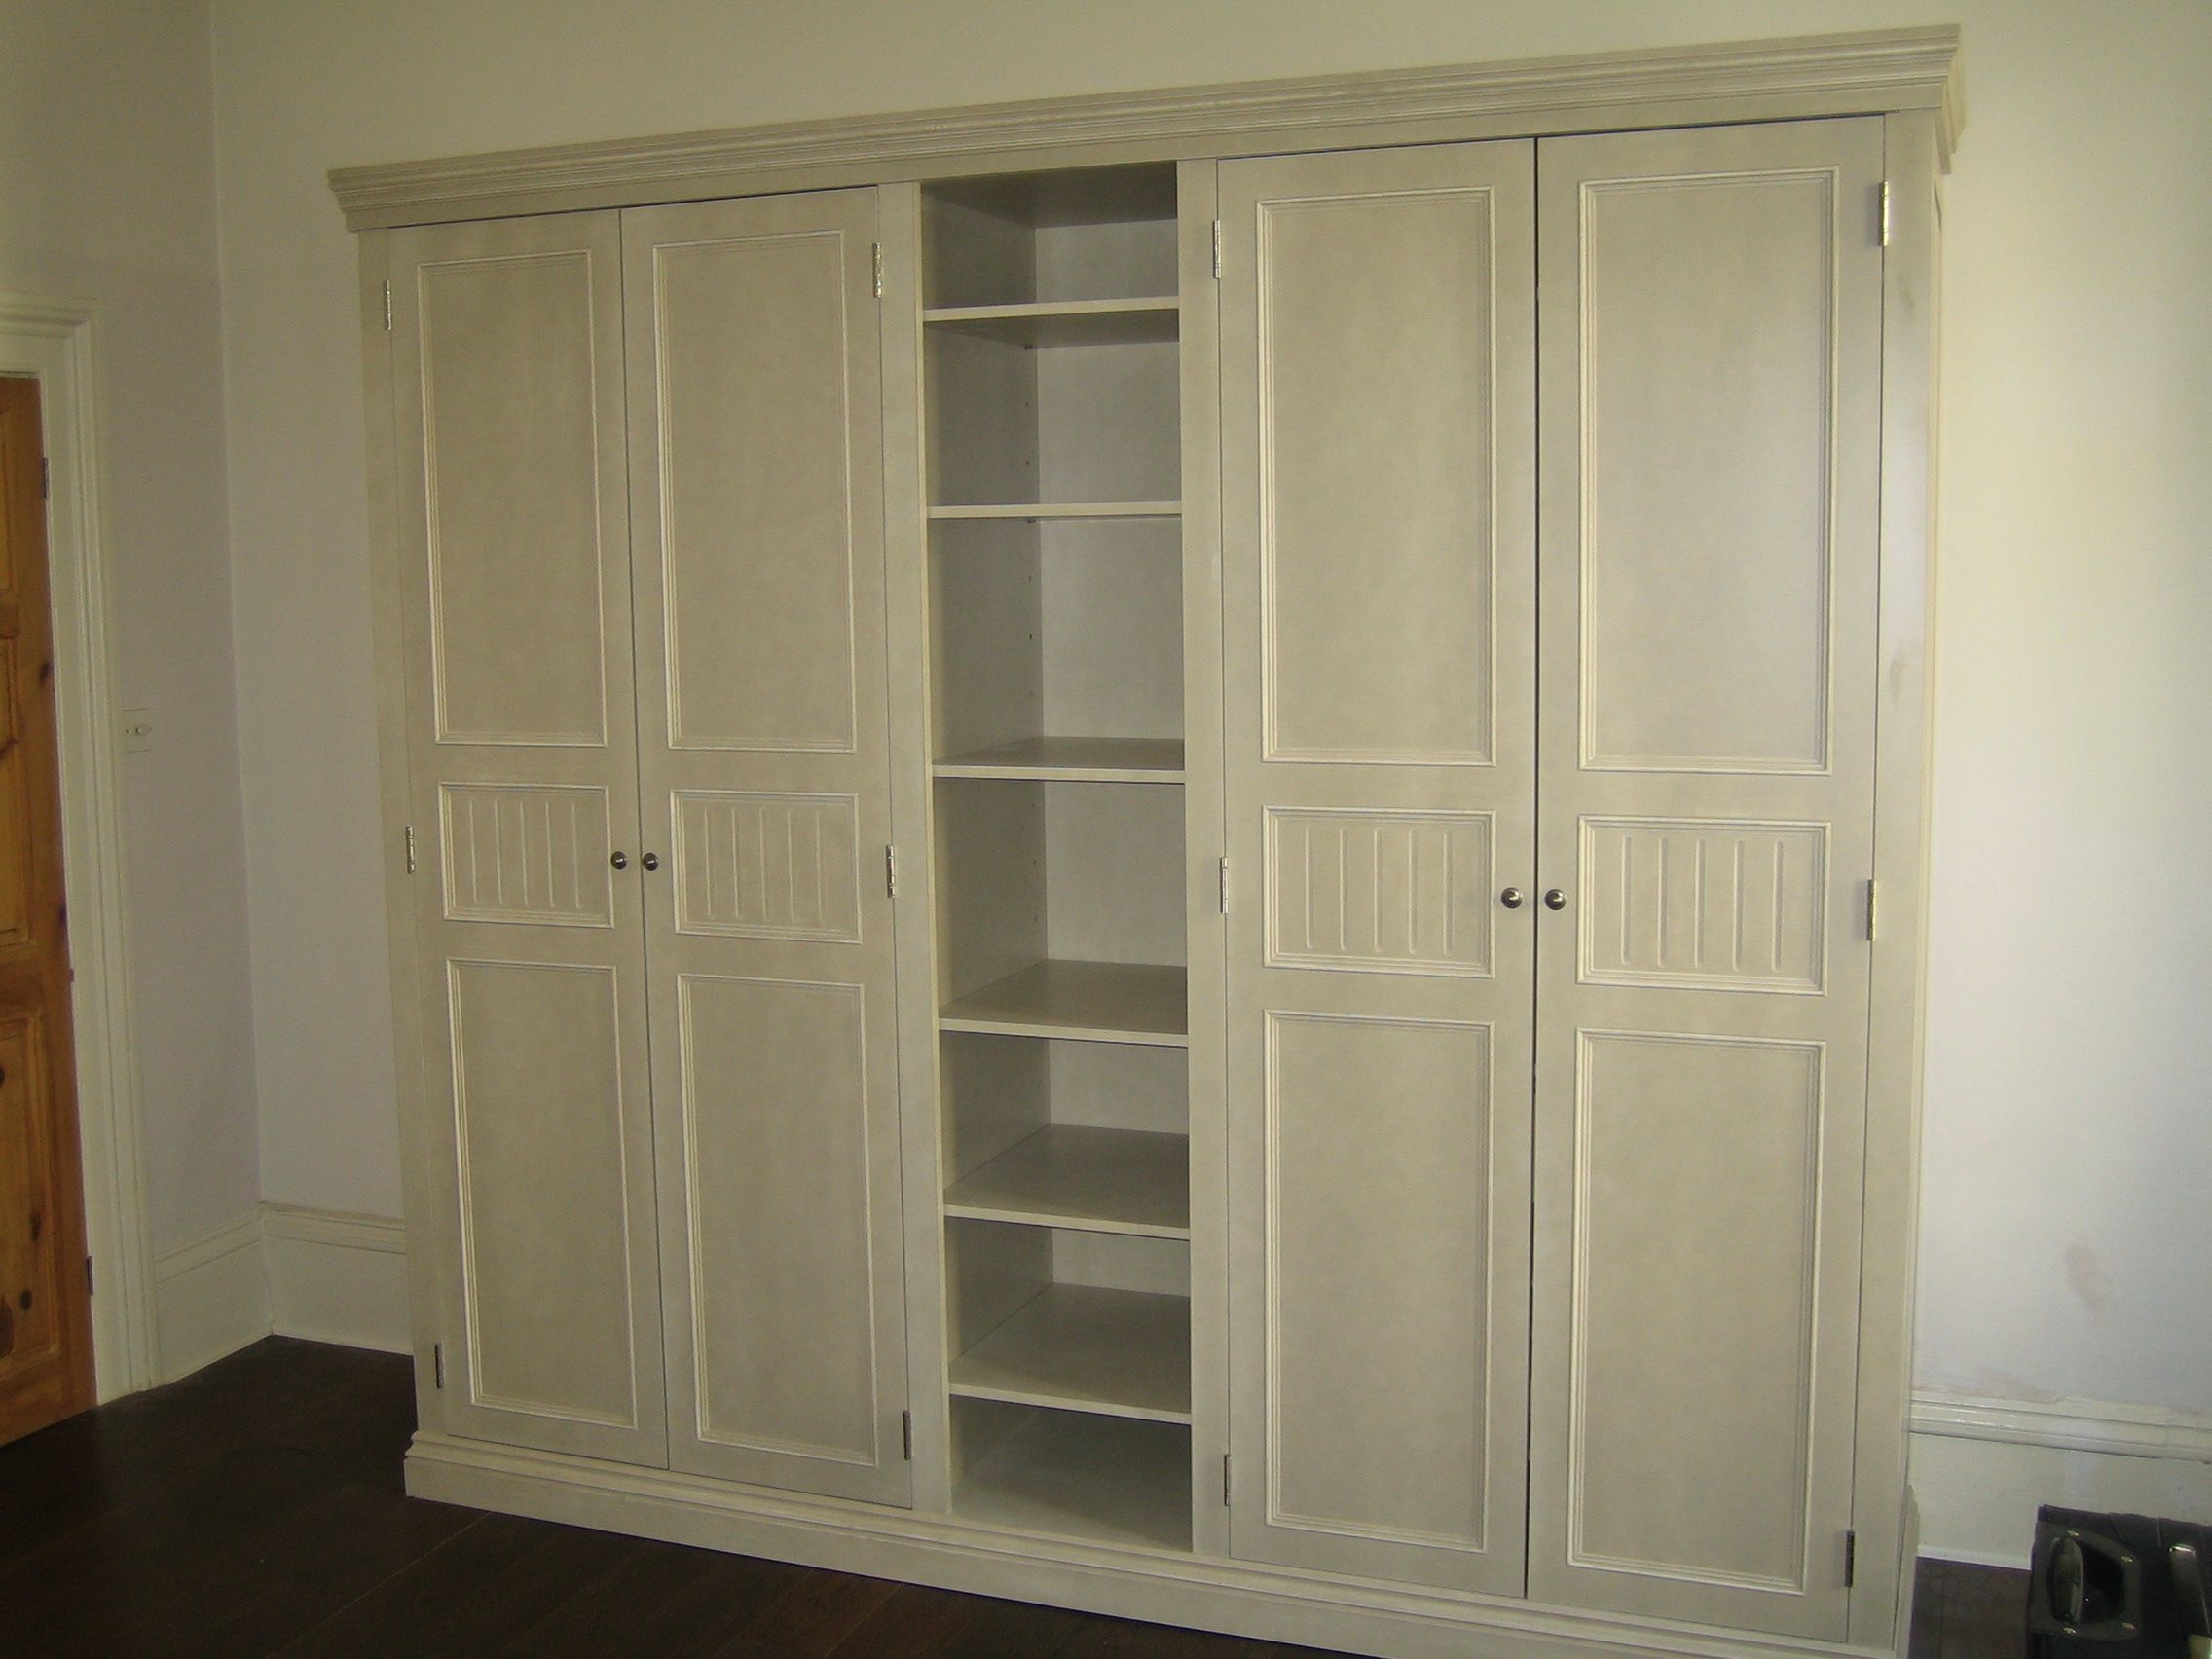 Bedroom Built In Closets I Have Just The Spot For This Built In Wardrobe Idea Home